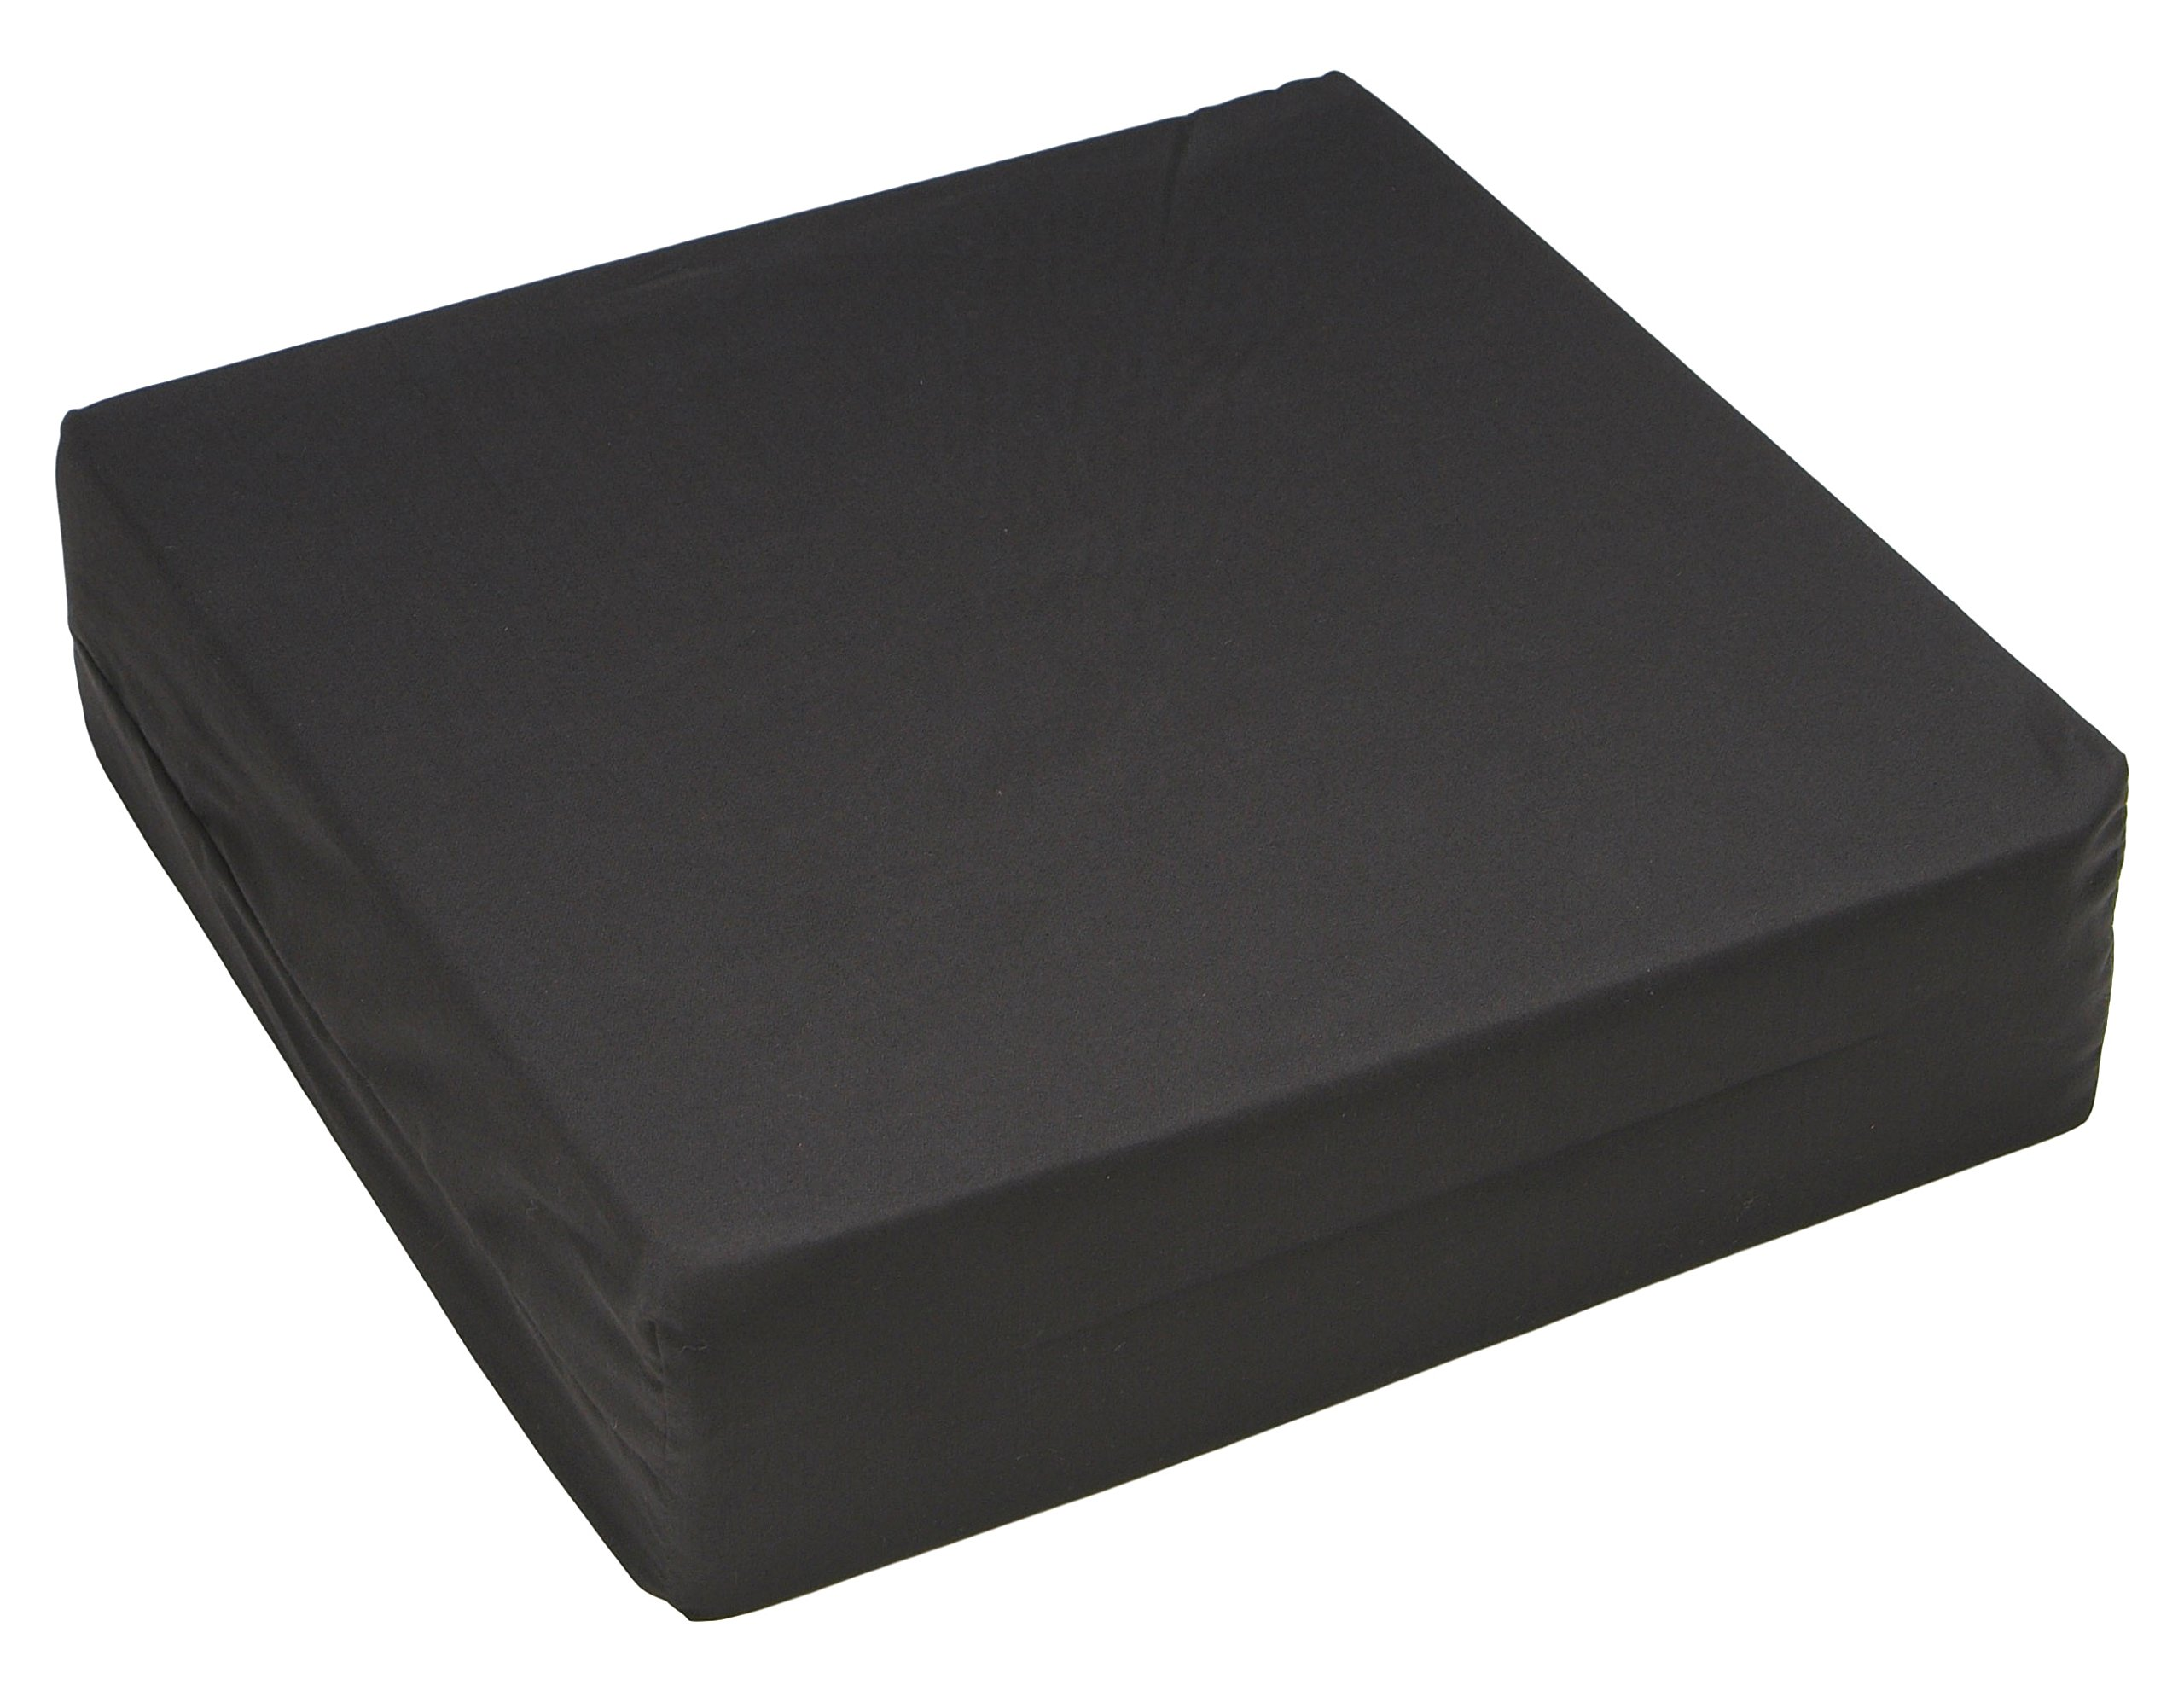 Hermell Products WC4440BK Wheelchair Cushion, 16 by 18 by 4-Inch, Black